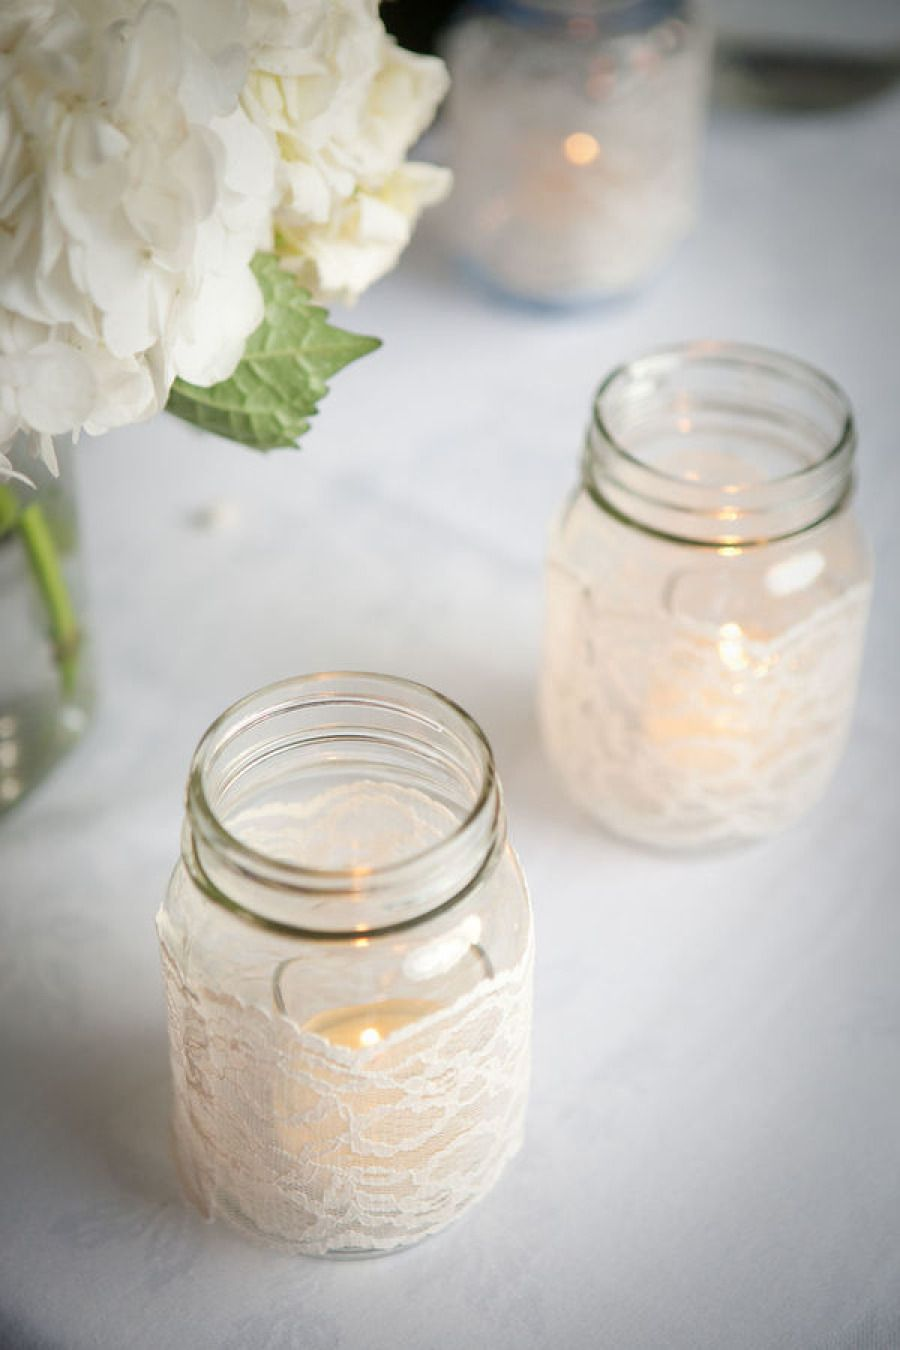 Toronto Wedding by LG Weddings | Centerpieces, Favors and Jar